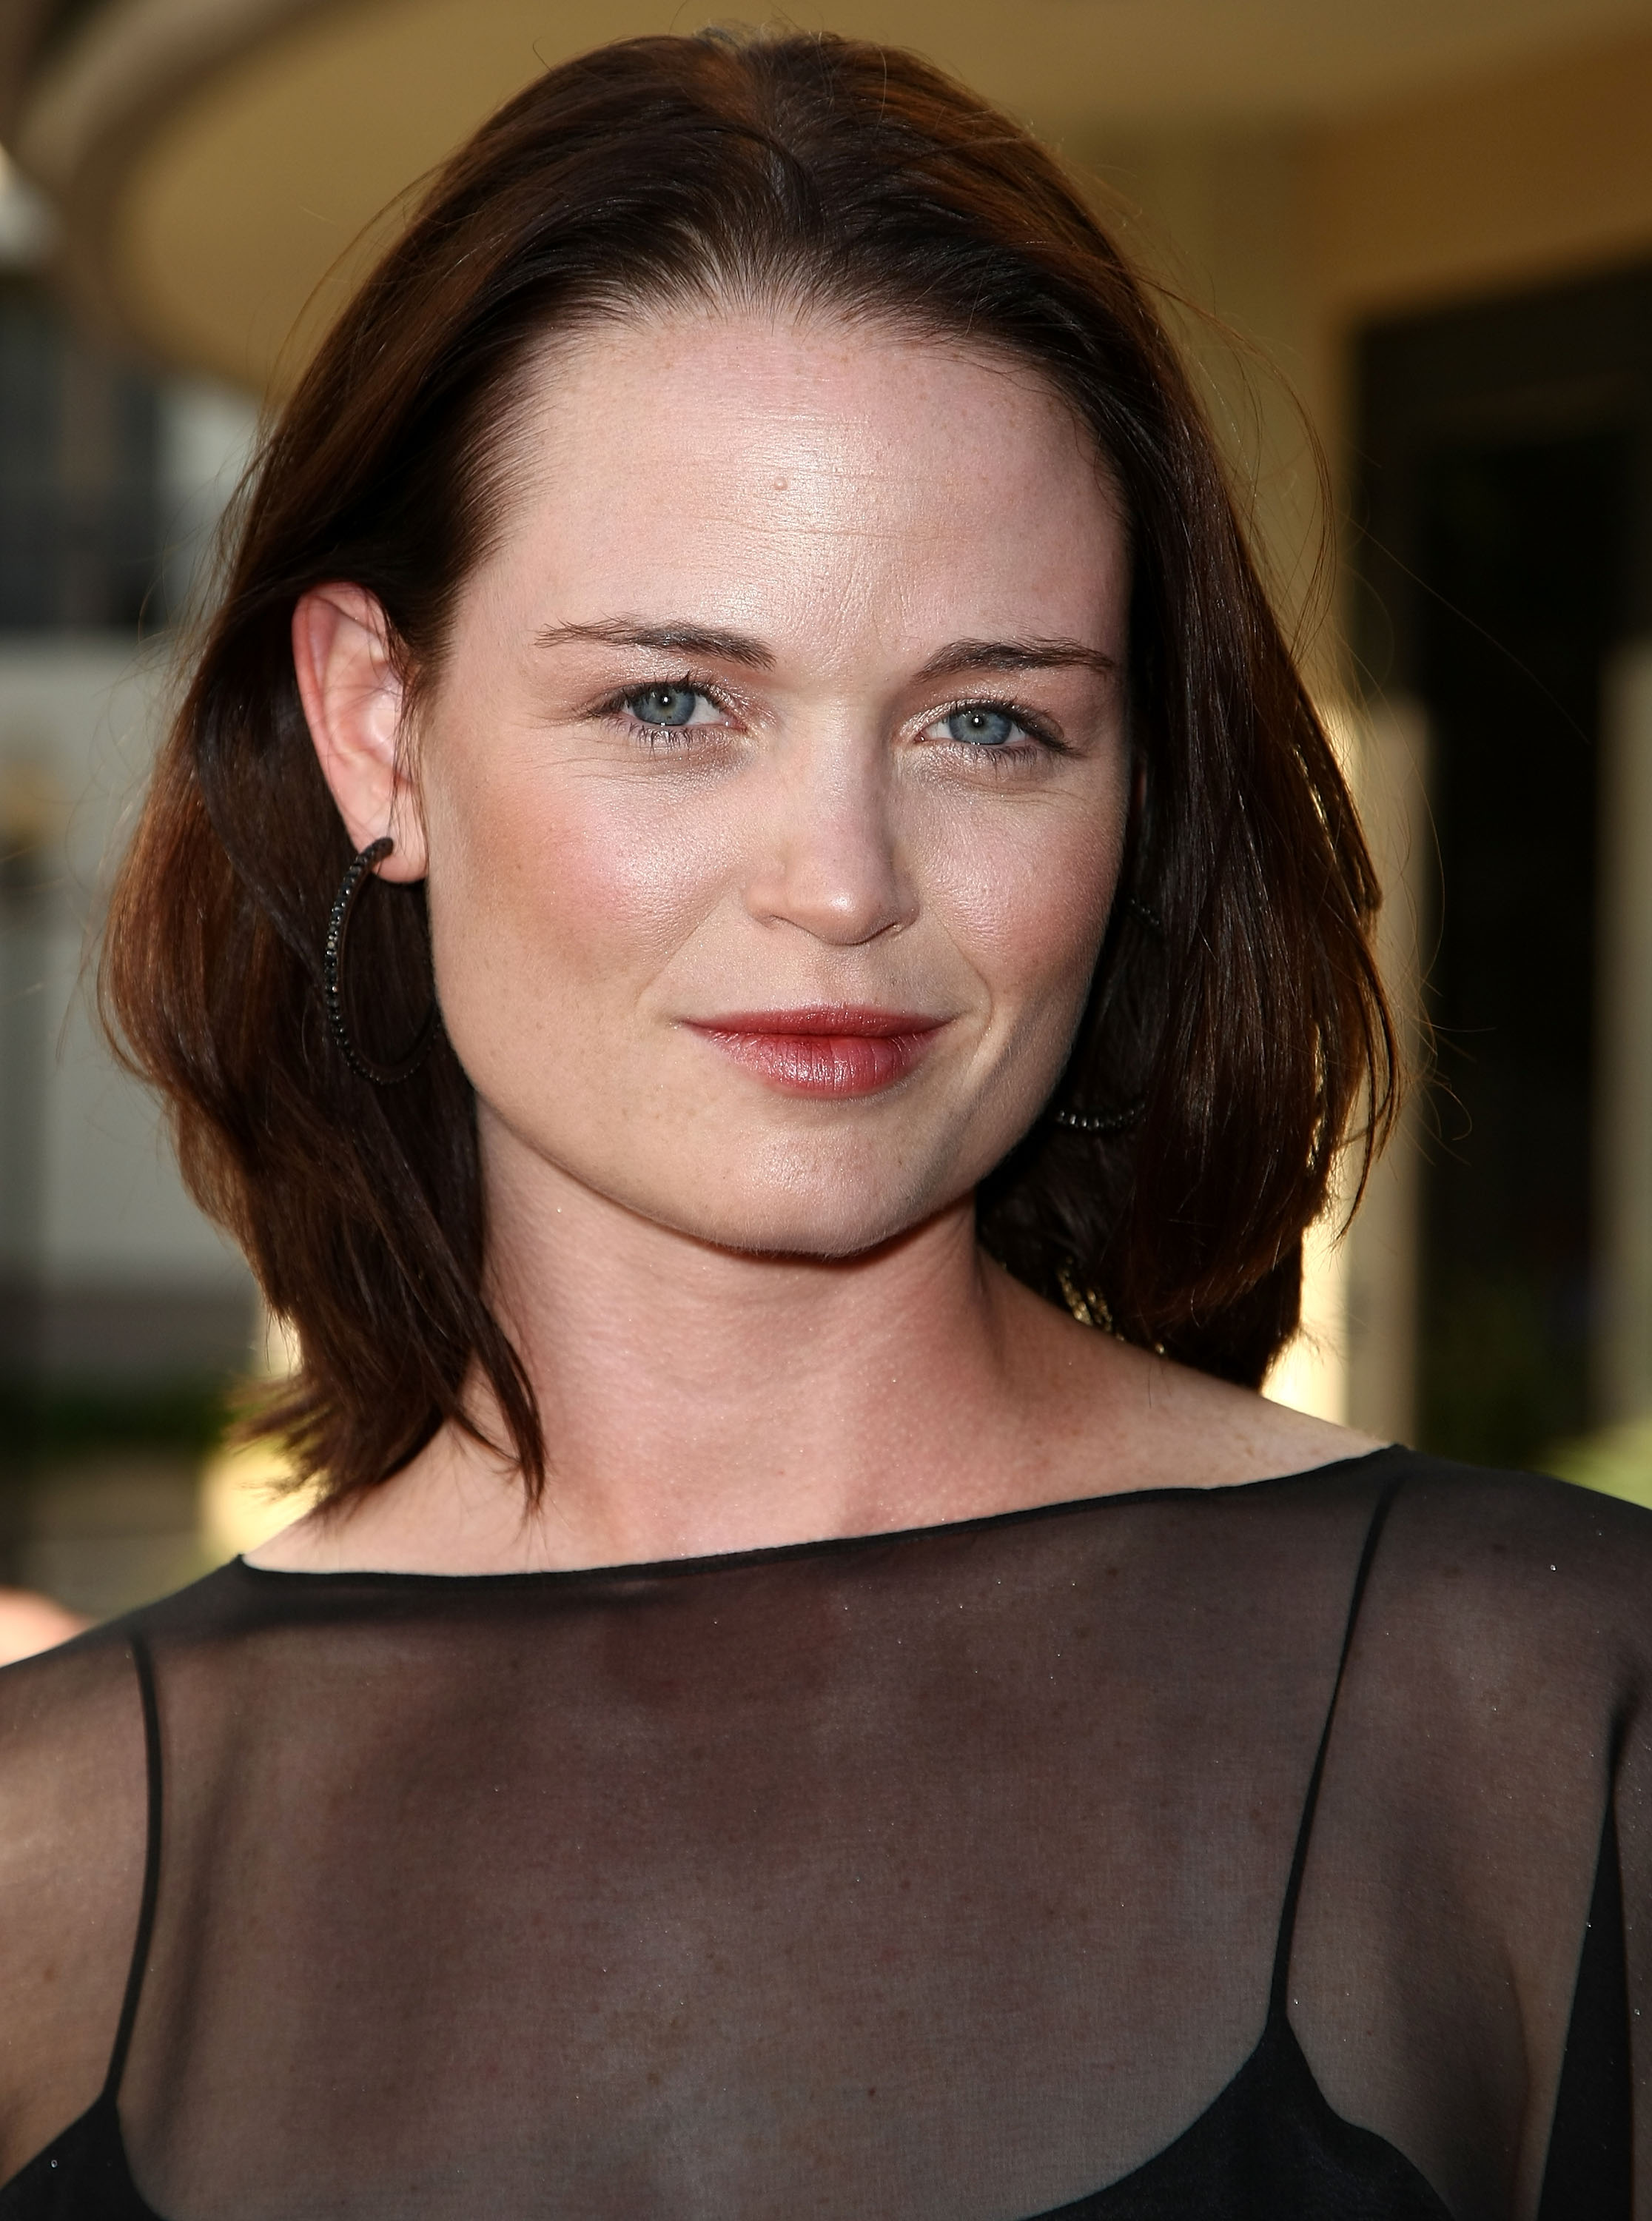 sprague grayden look alikesprague grayden look alike, sprague grayden, sprague grayden robin tunney, sprague grayden imdb, sprague grayden 24, sprague grayden sons of anarchy, sprague grayden grey's anatomy, sprague grayden husband, sprague grayden nudography, sprague grayden married, sprague grayden the following, sprague grayden net worth, sprague grayden one tree hill, sprague grayden weeds, sprague grayden wikifeet, sprague grayden criminal minds, sprague grayden height, sprague grayden true detective